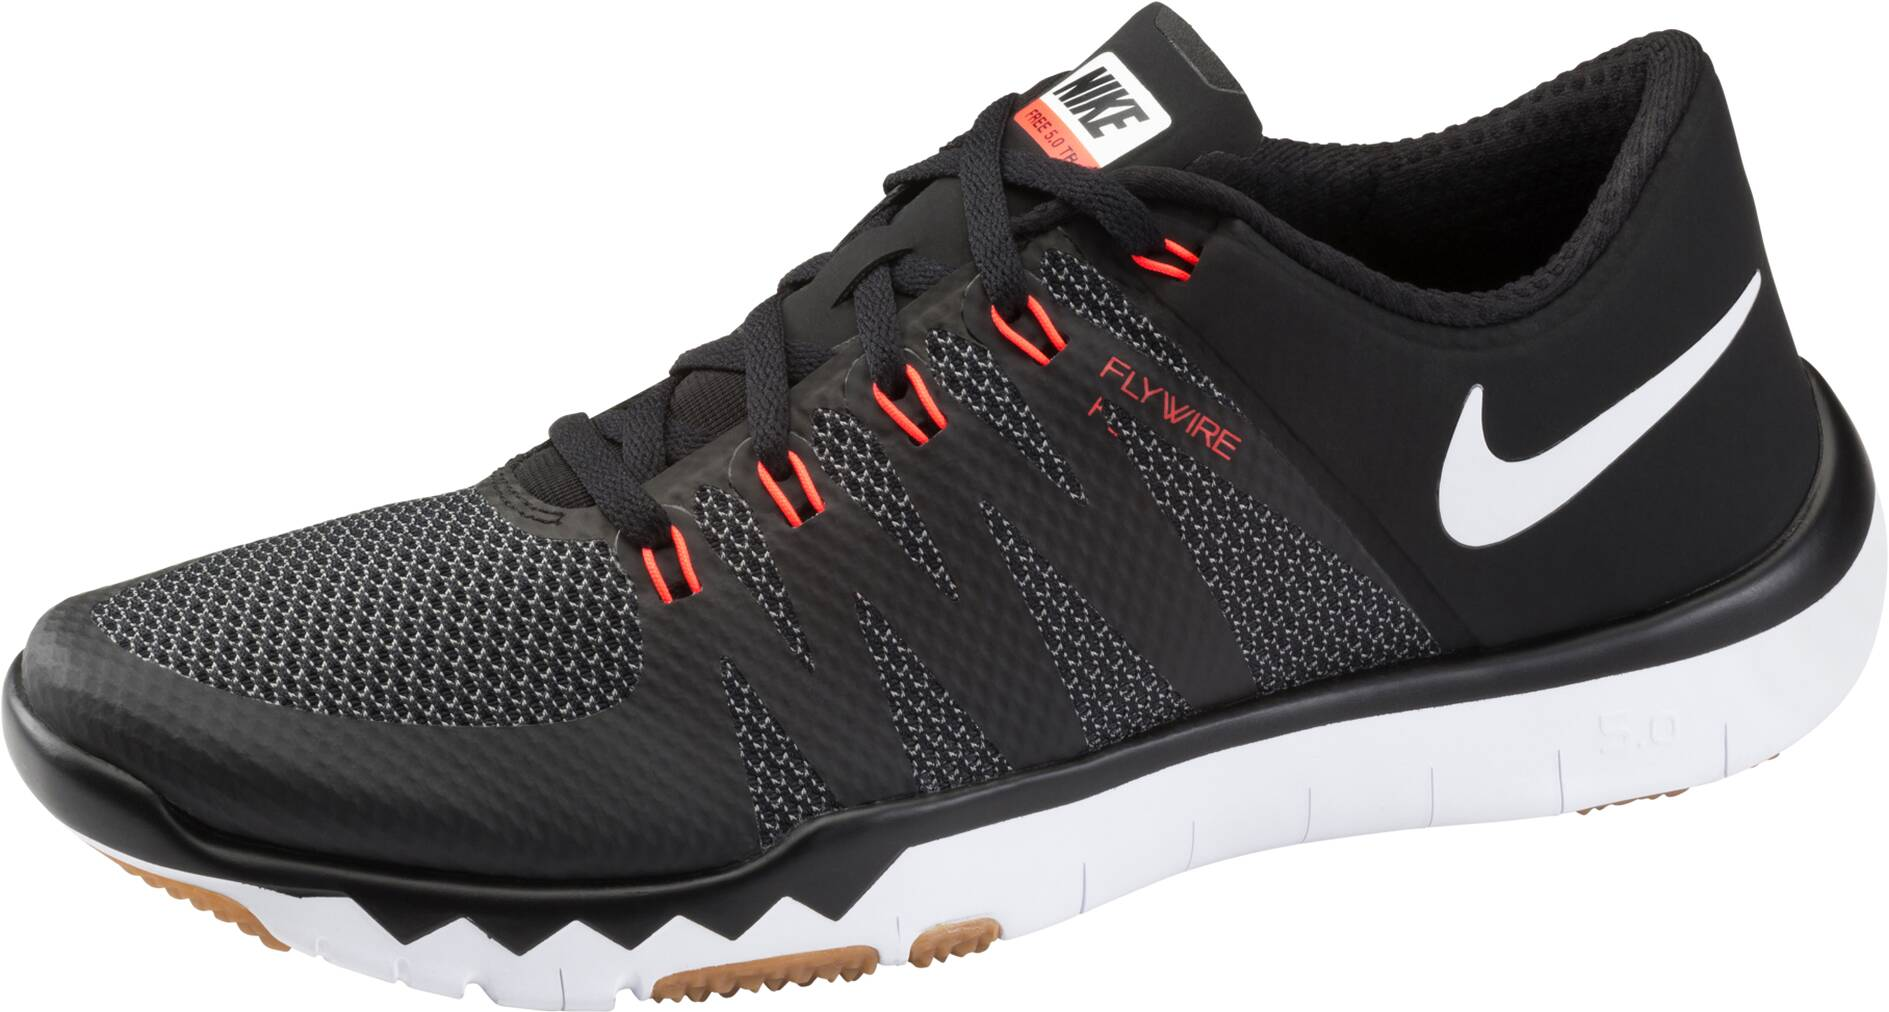 official photos aec60 8b1b0 ... where can i buy nike free junior intersport . cdce8 07843